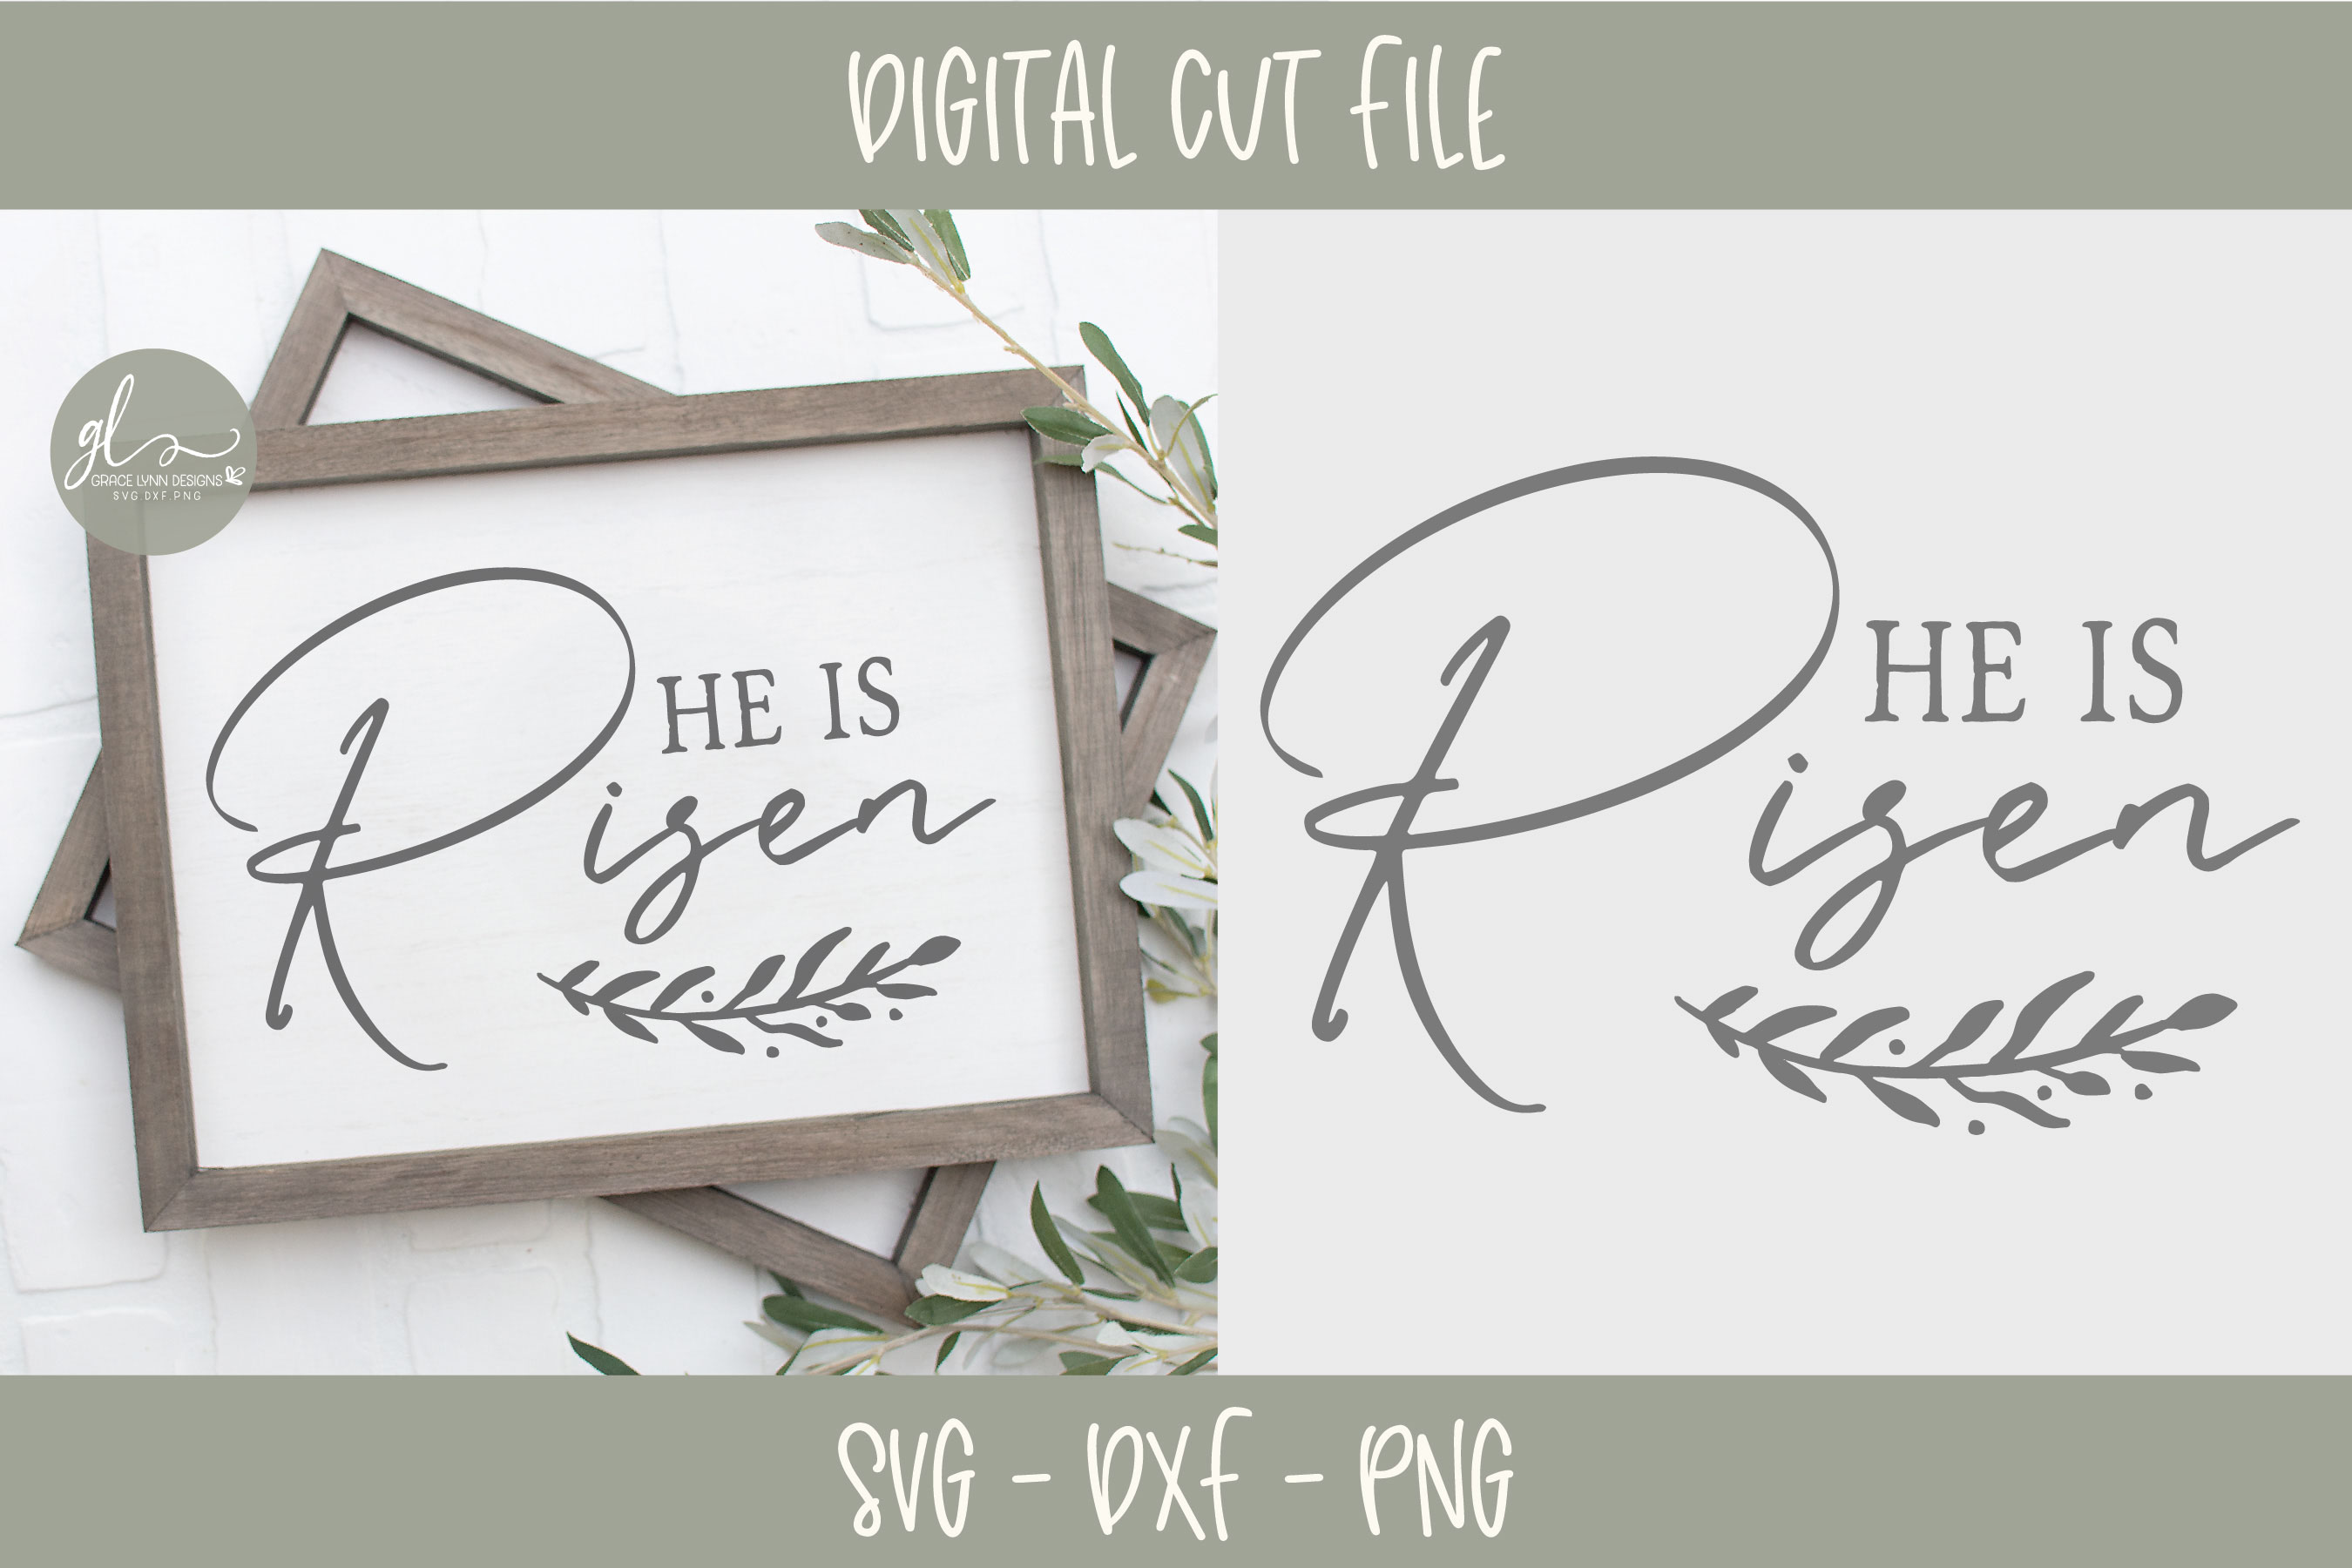 He Is Risen - Easter SVG Cut File example image 1